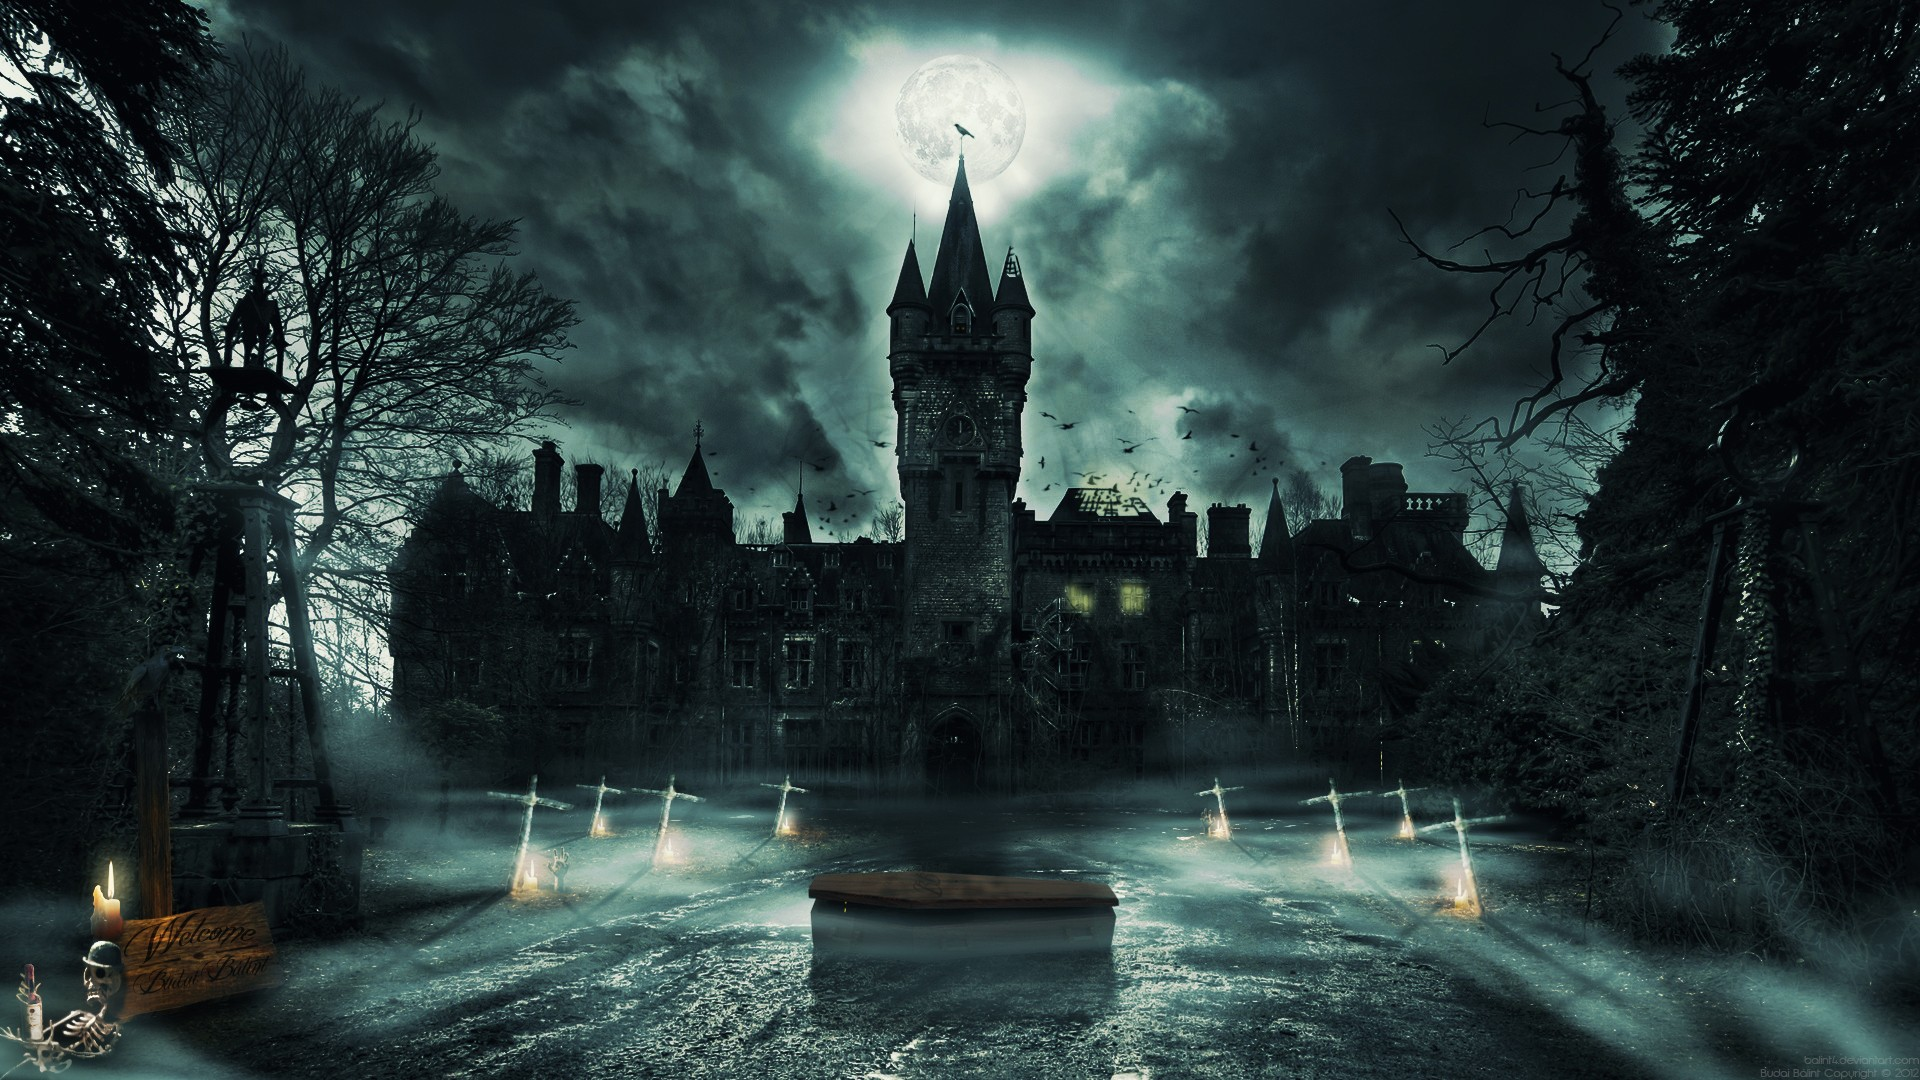 castle wallpaper cloud candles raven budai welcome ghost coffin 1920x1080